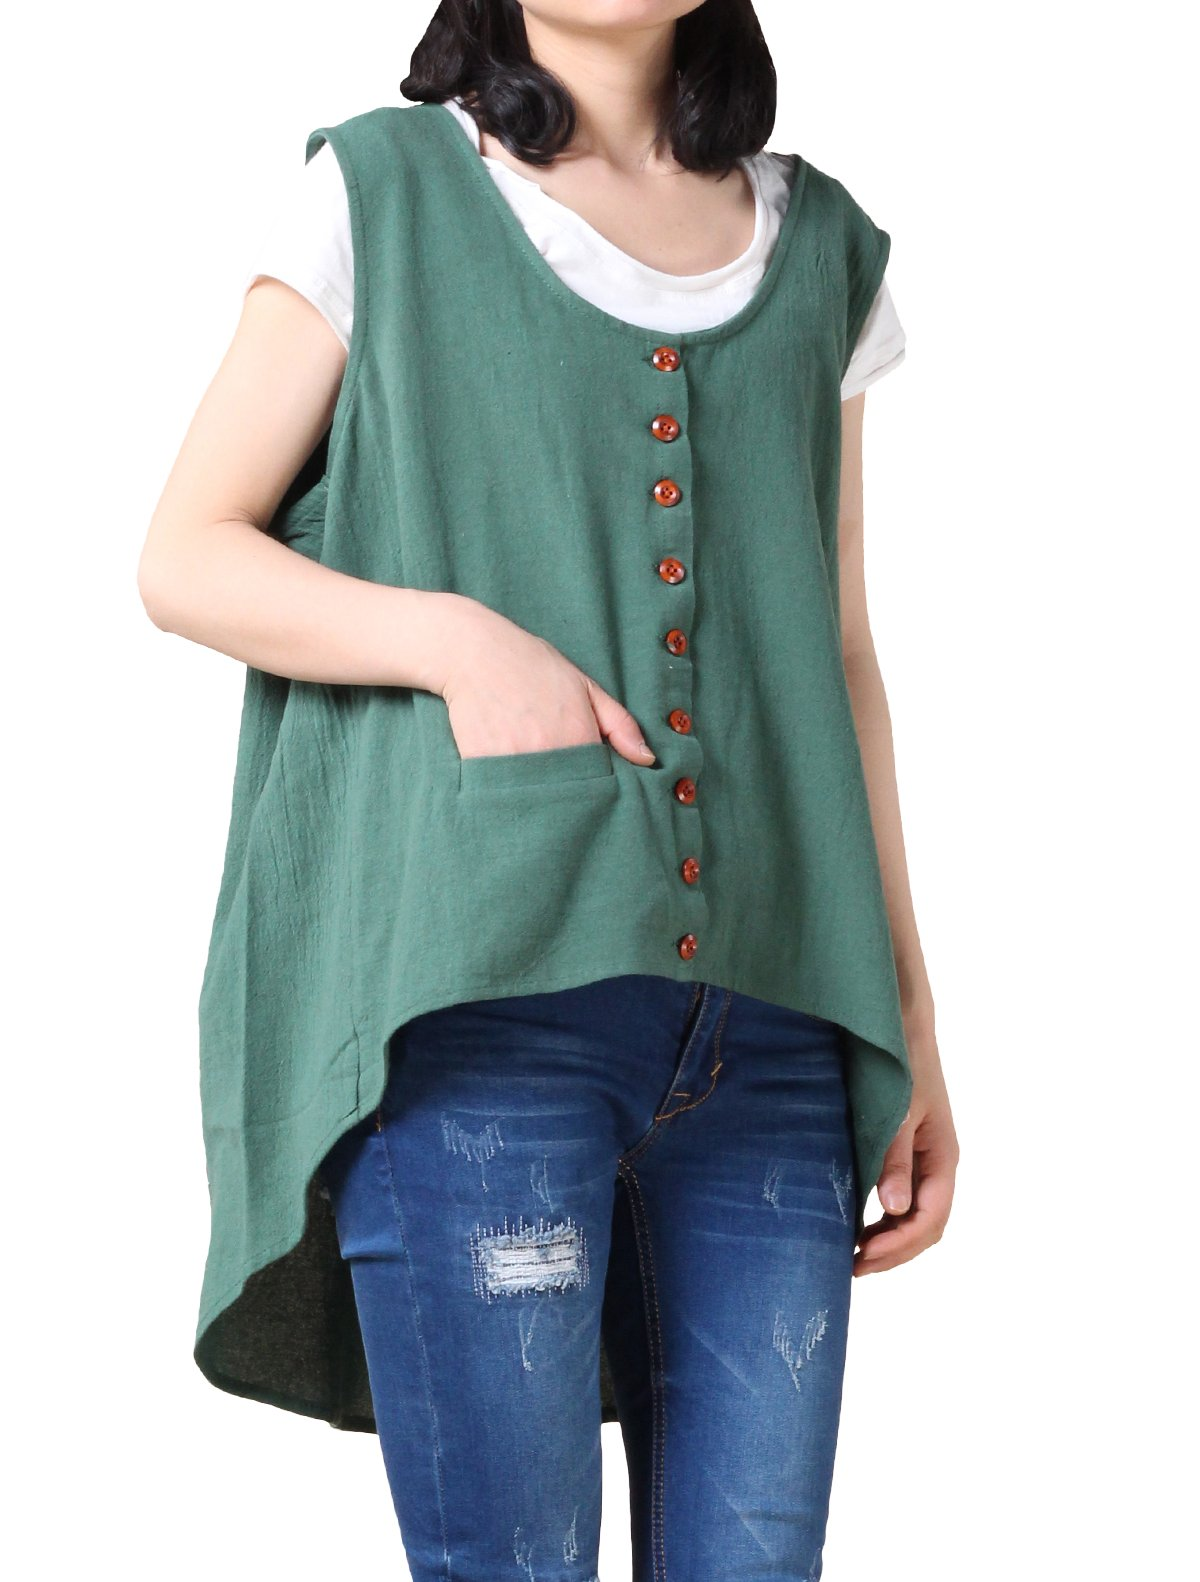 Mordenmiss Women's New Sleeveless Hi-Low Vest Tops Lightweight Jacket with Pockets Style 1 L Green